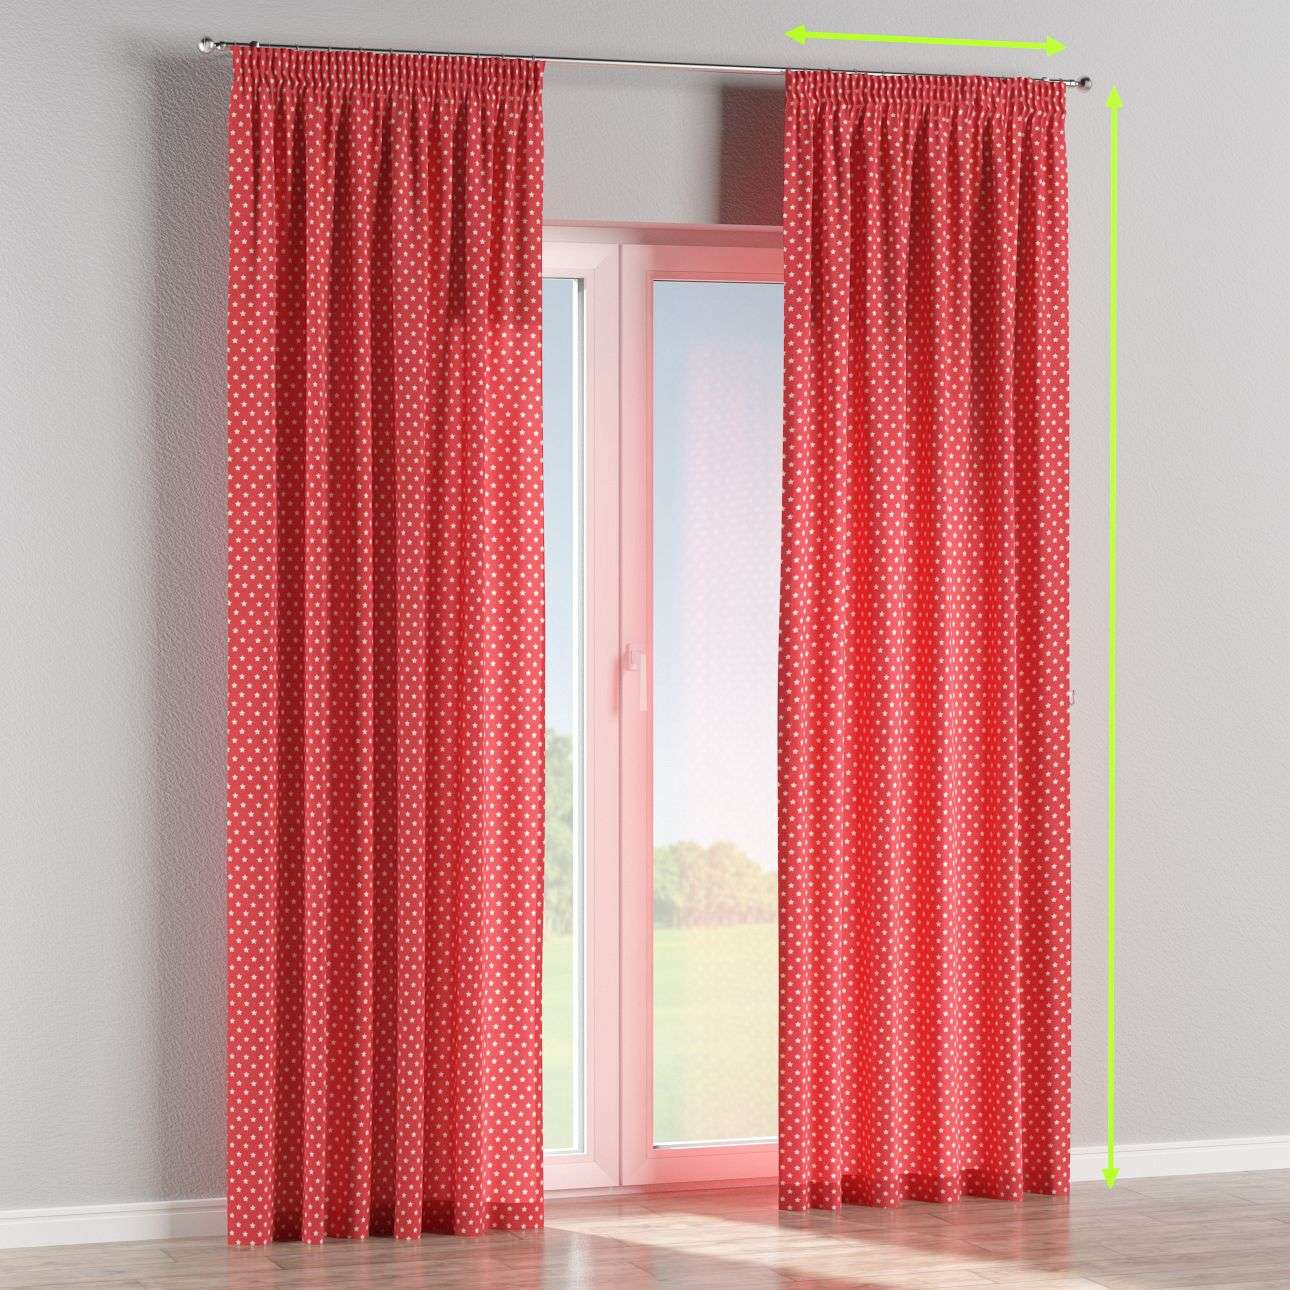 Pencil pleat lined curtains in collection Ashley, fabric: 137-69